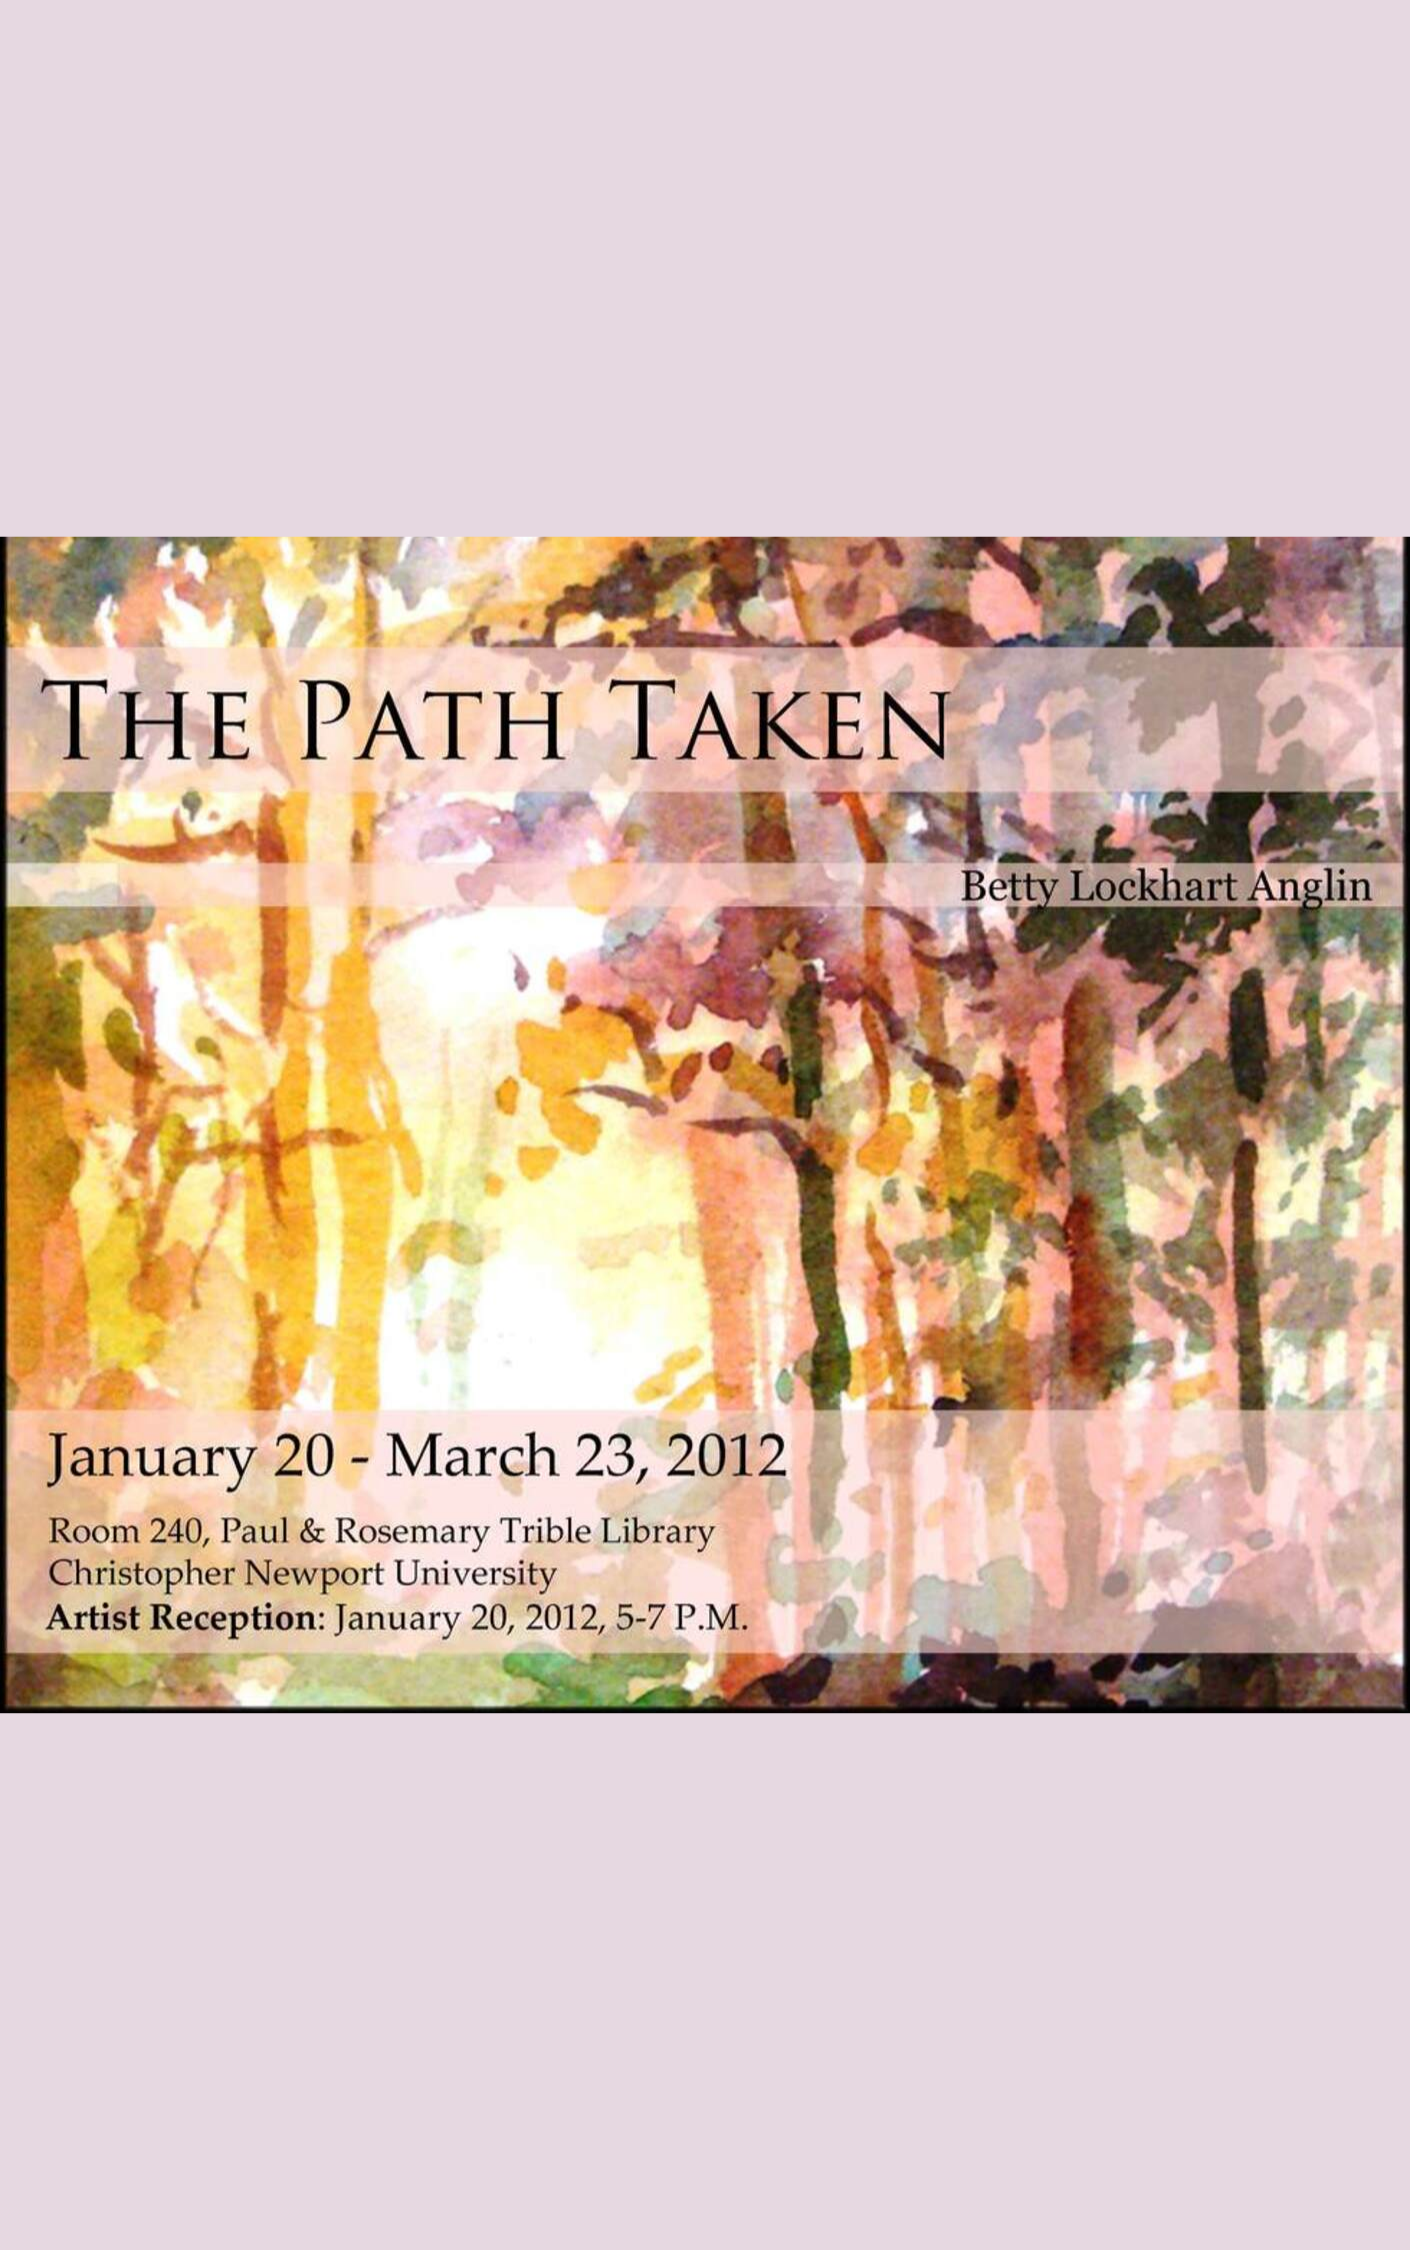 The Path Taken: A Retrospective of the Work of Betty Lockhart Anglin, Christopher Newport University, January 20, 2012